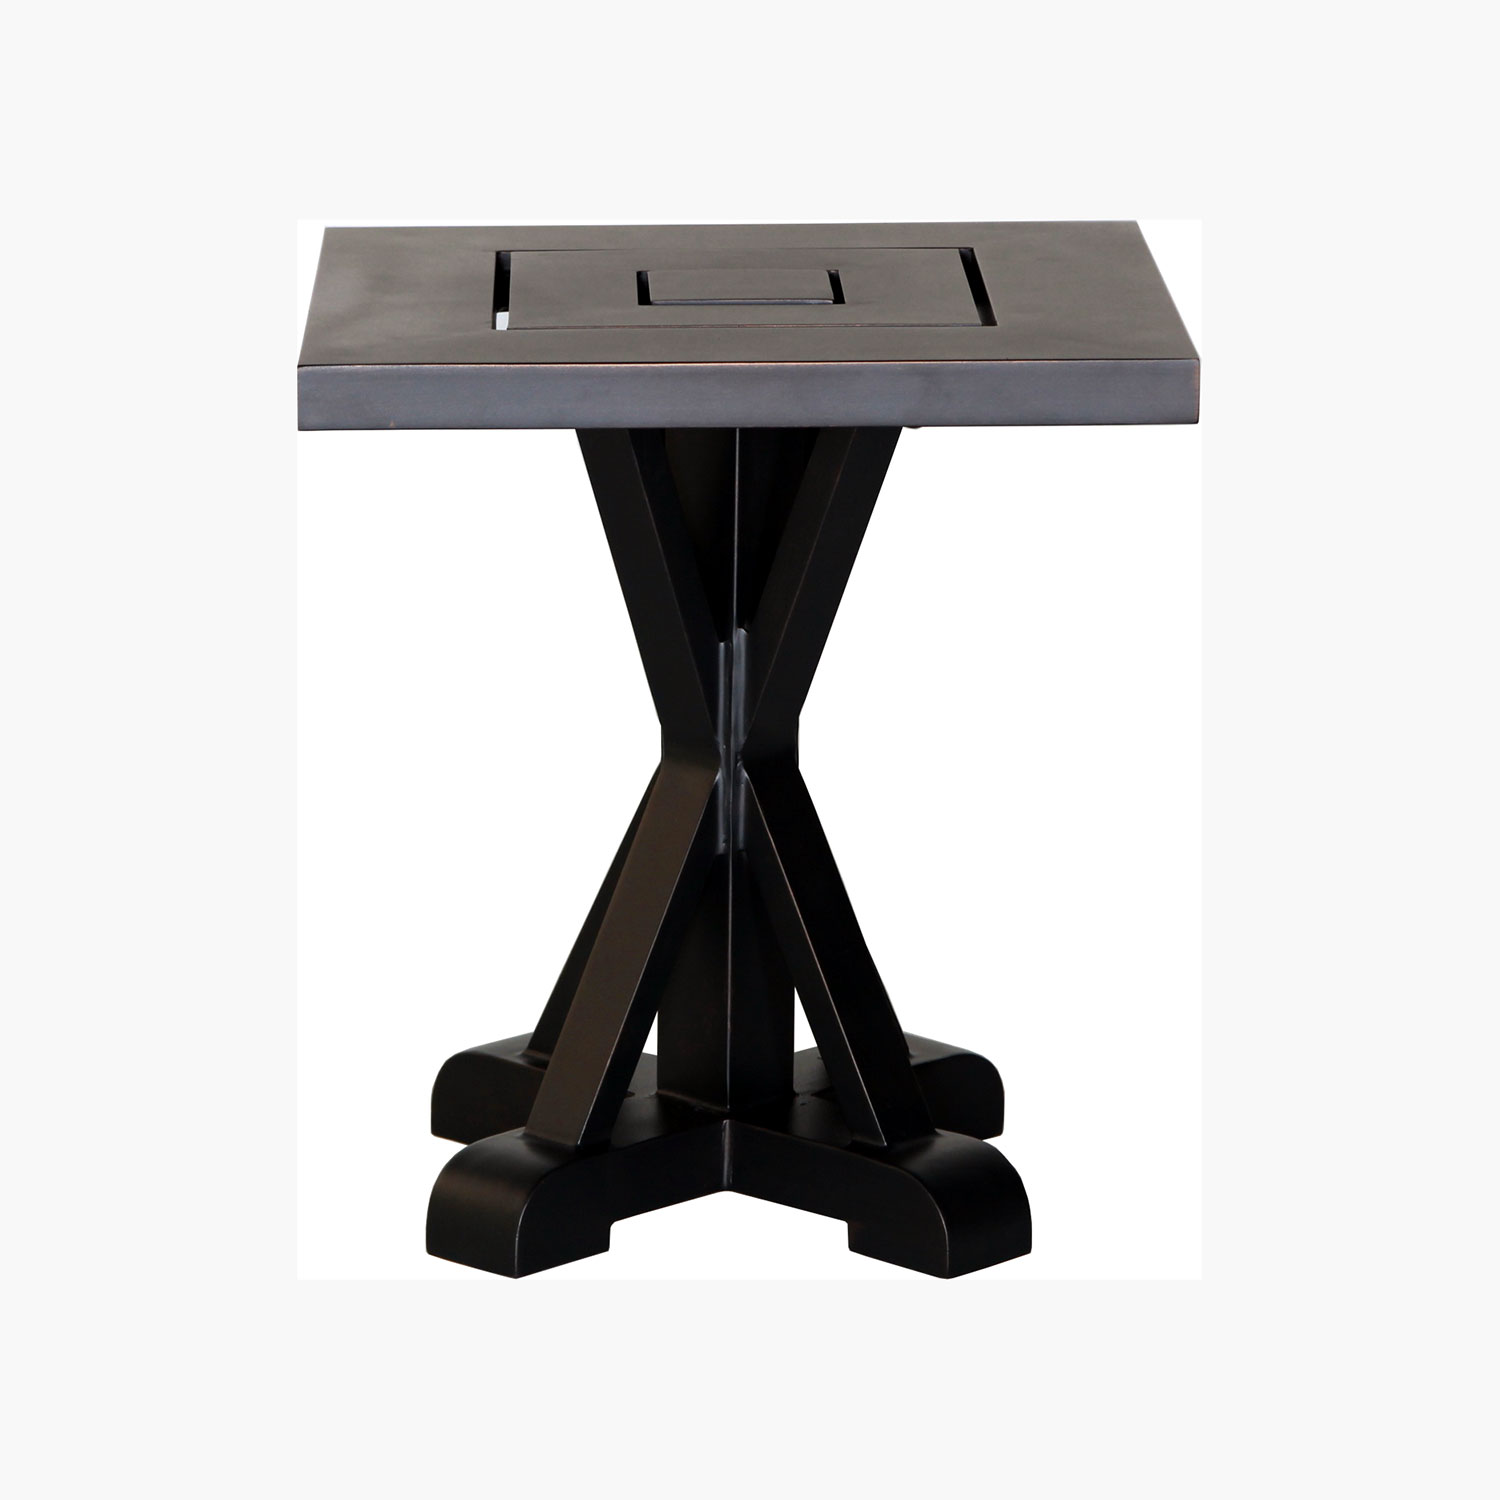 series square accent table jmsqat outdoor furniture end small patio affordable marble coffee dining room sets ikea black aluminum gold leaf side handbag storage big lots computer